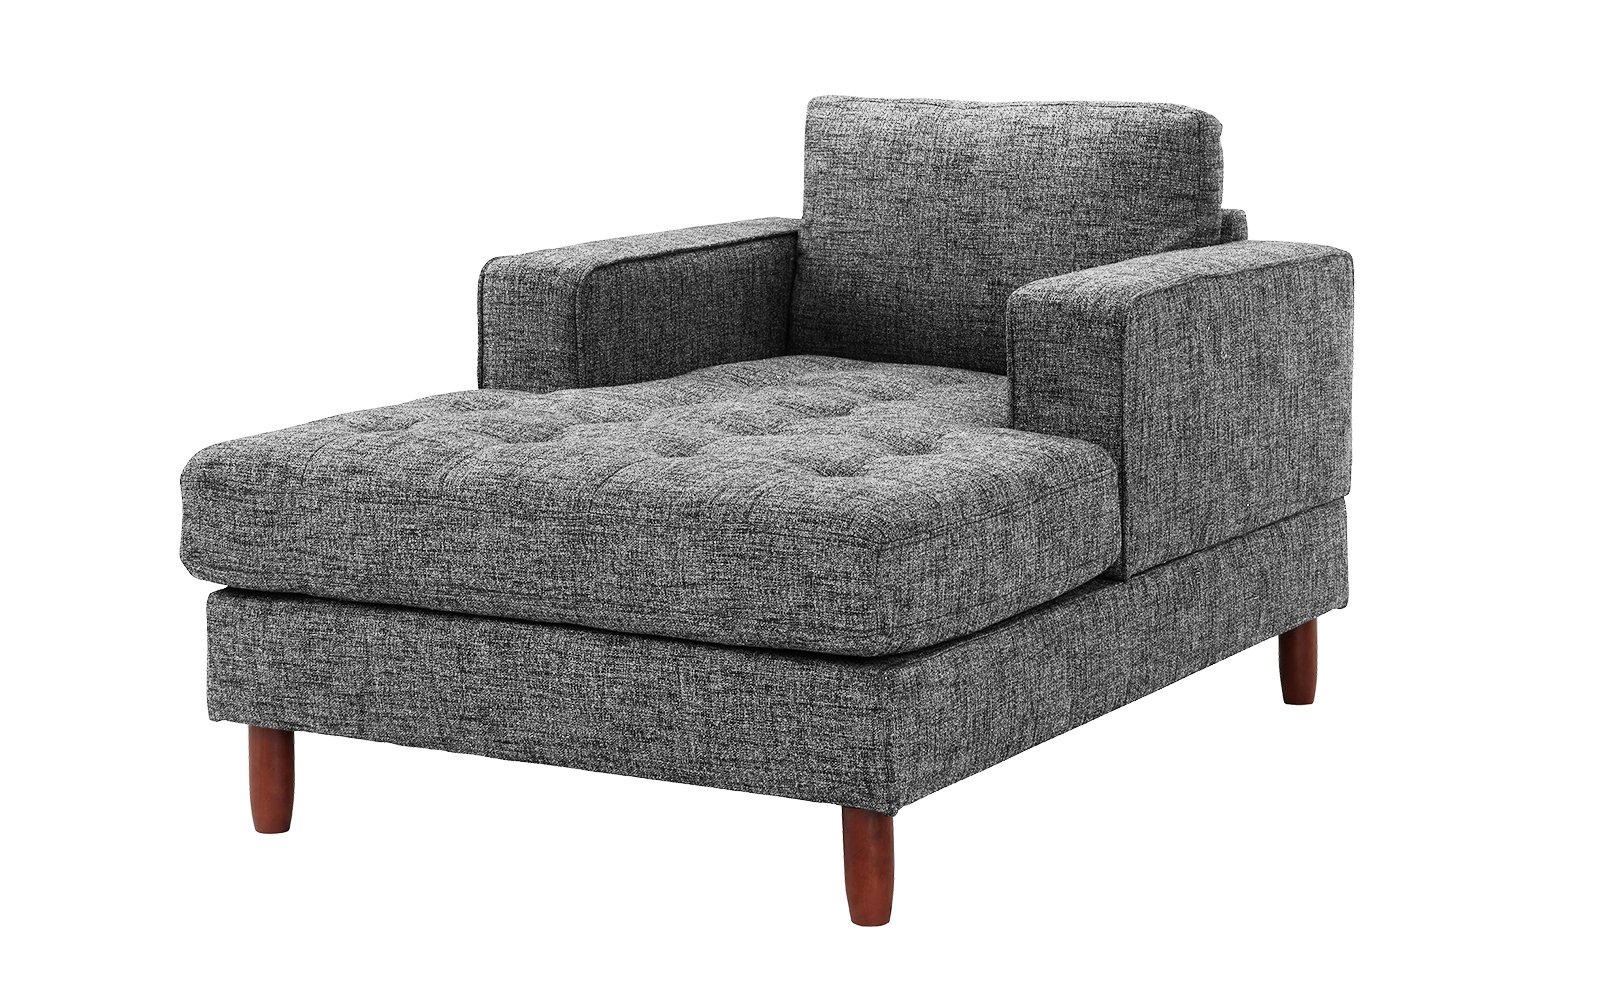 Setoril Modern Sectional Sofa Swith Chaise Woven Linen Throughout Favorite Mid Century Modern Linen Fabric Living Room Chaise Lounge (View 14 of 20)